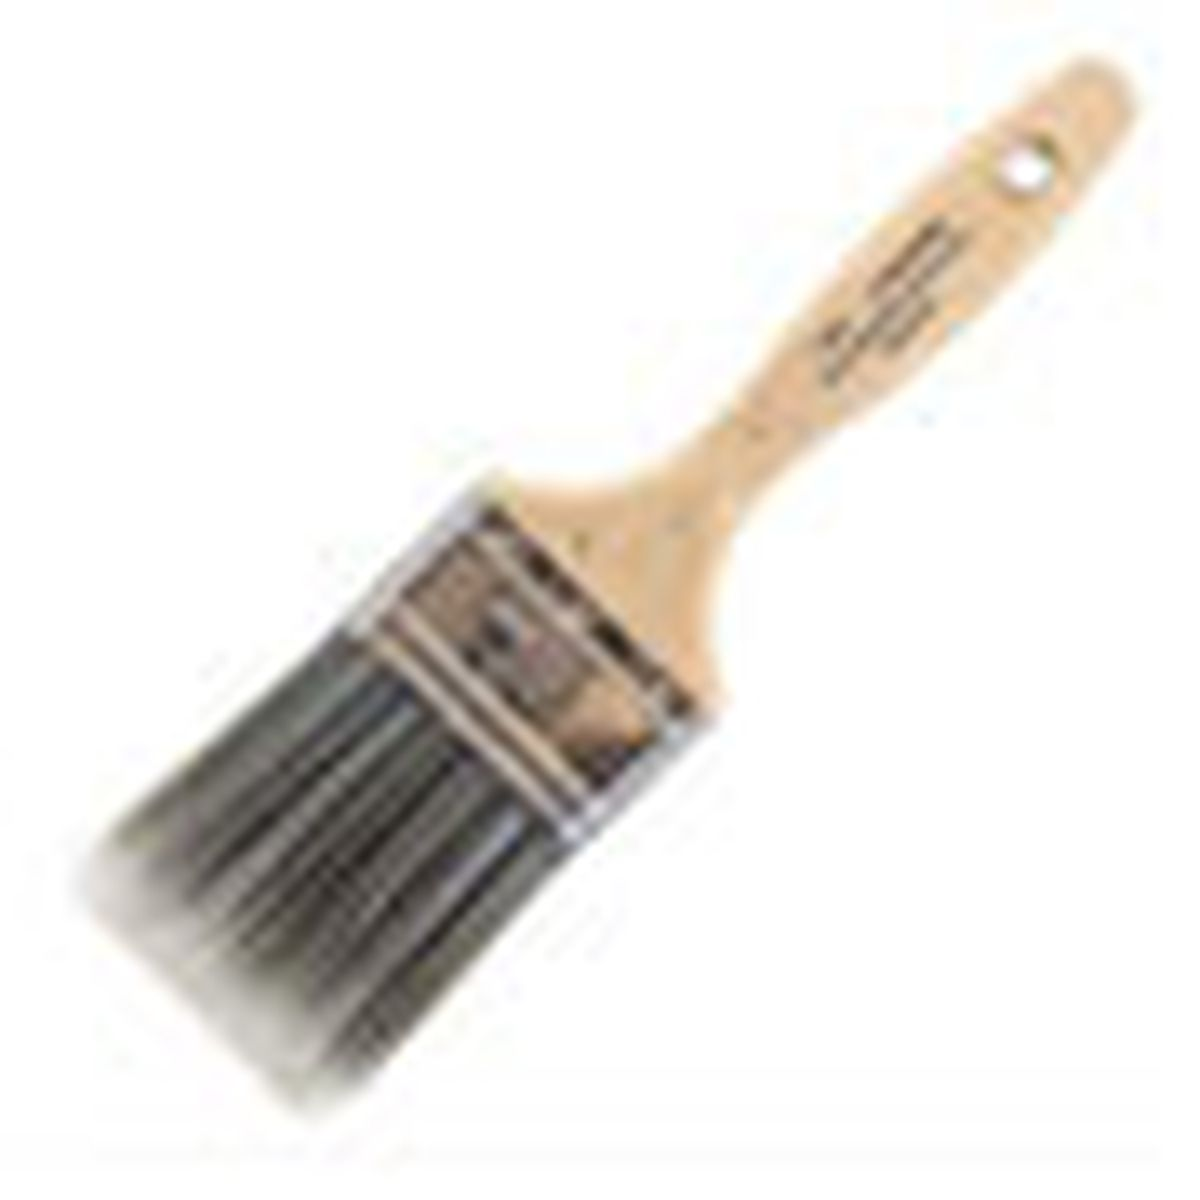 2-and-a-half-inch paintbrush